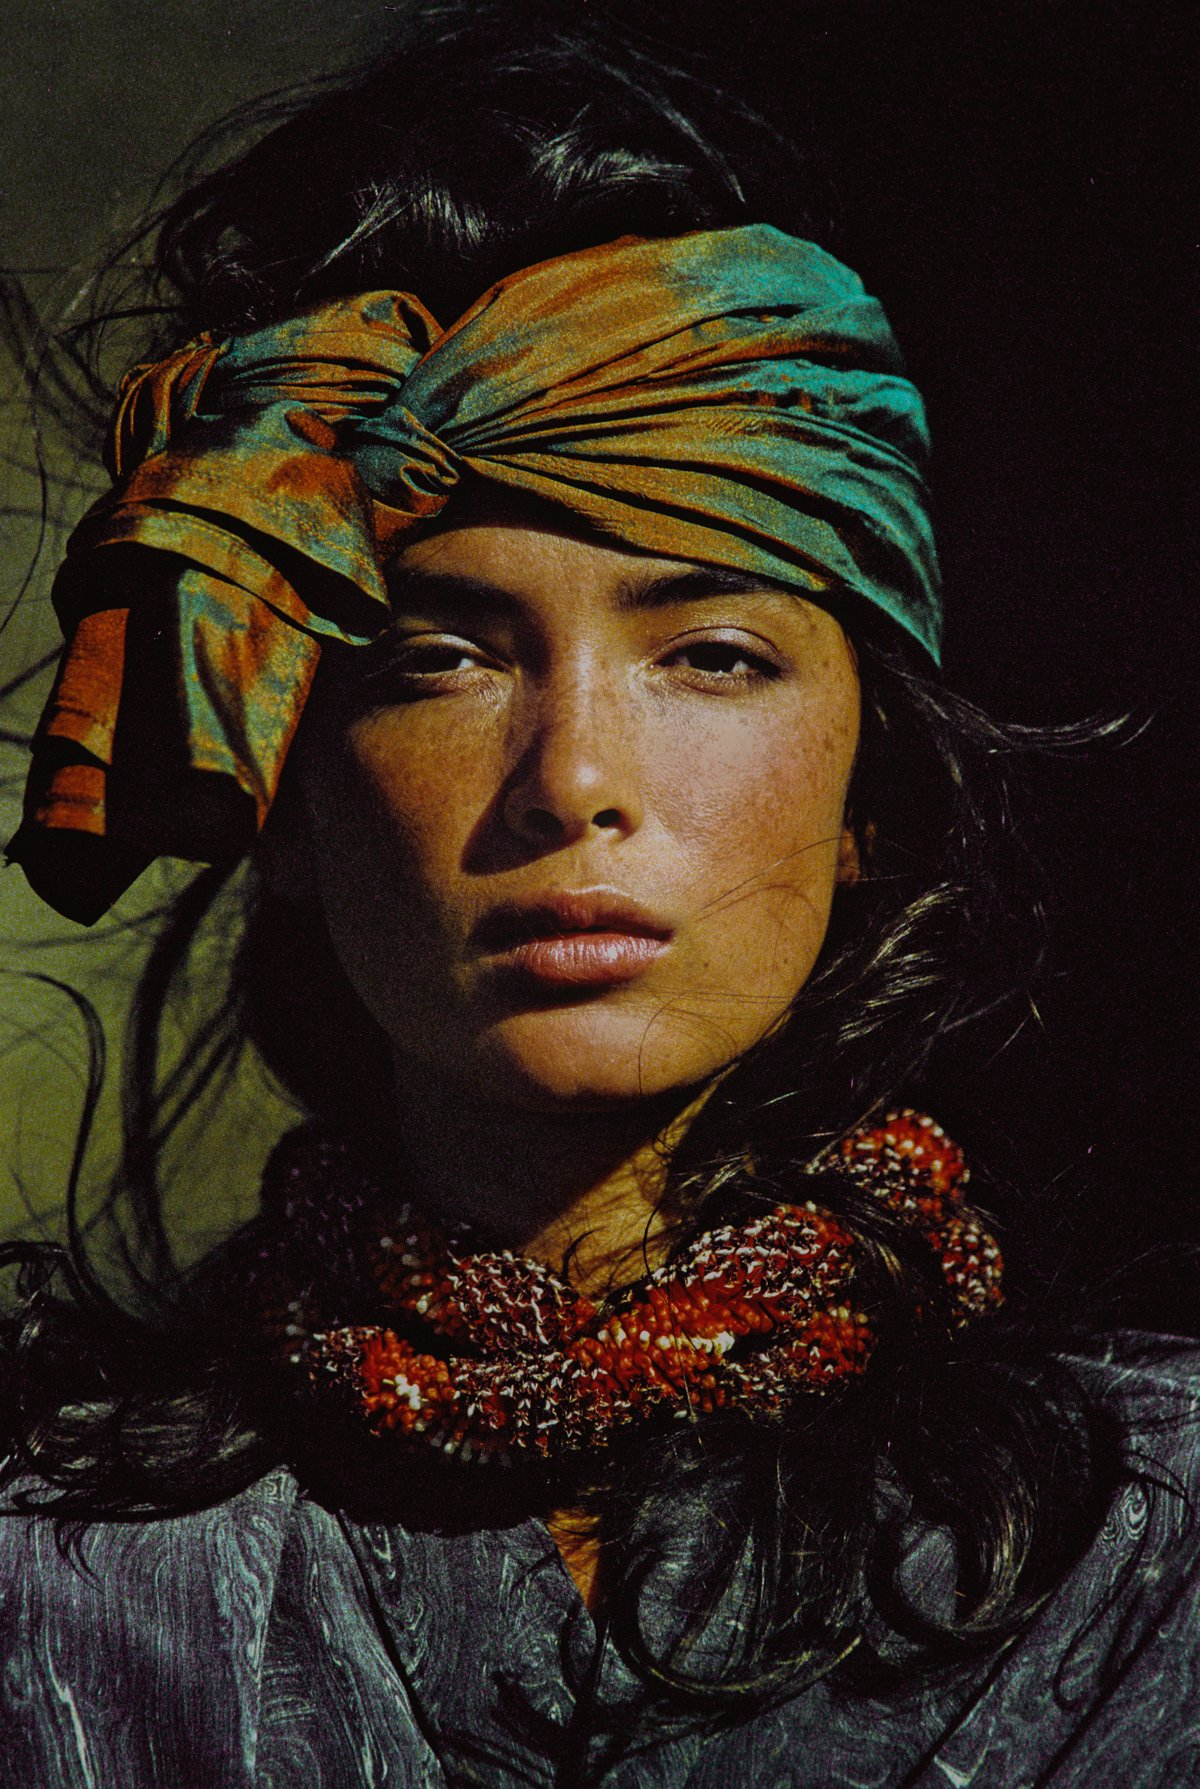 Linda Spierings shot by Hans Feurer